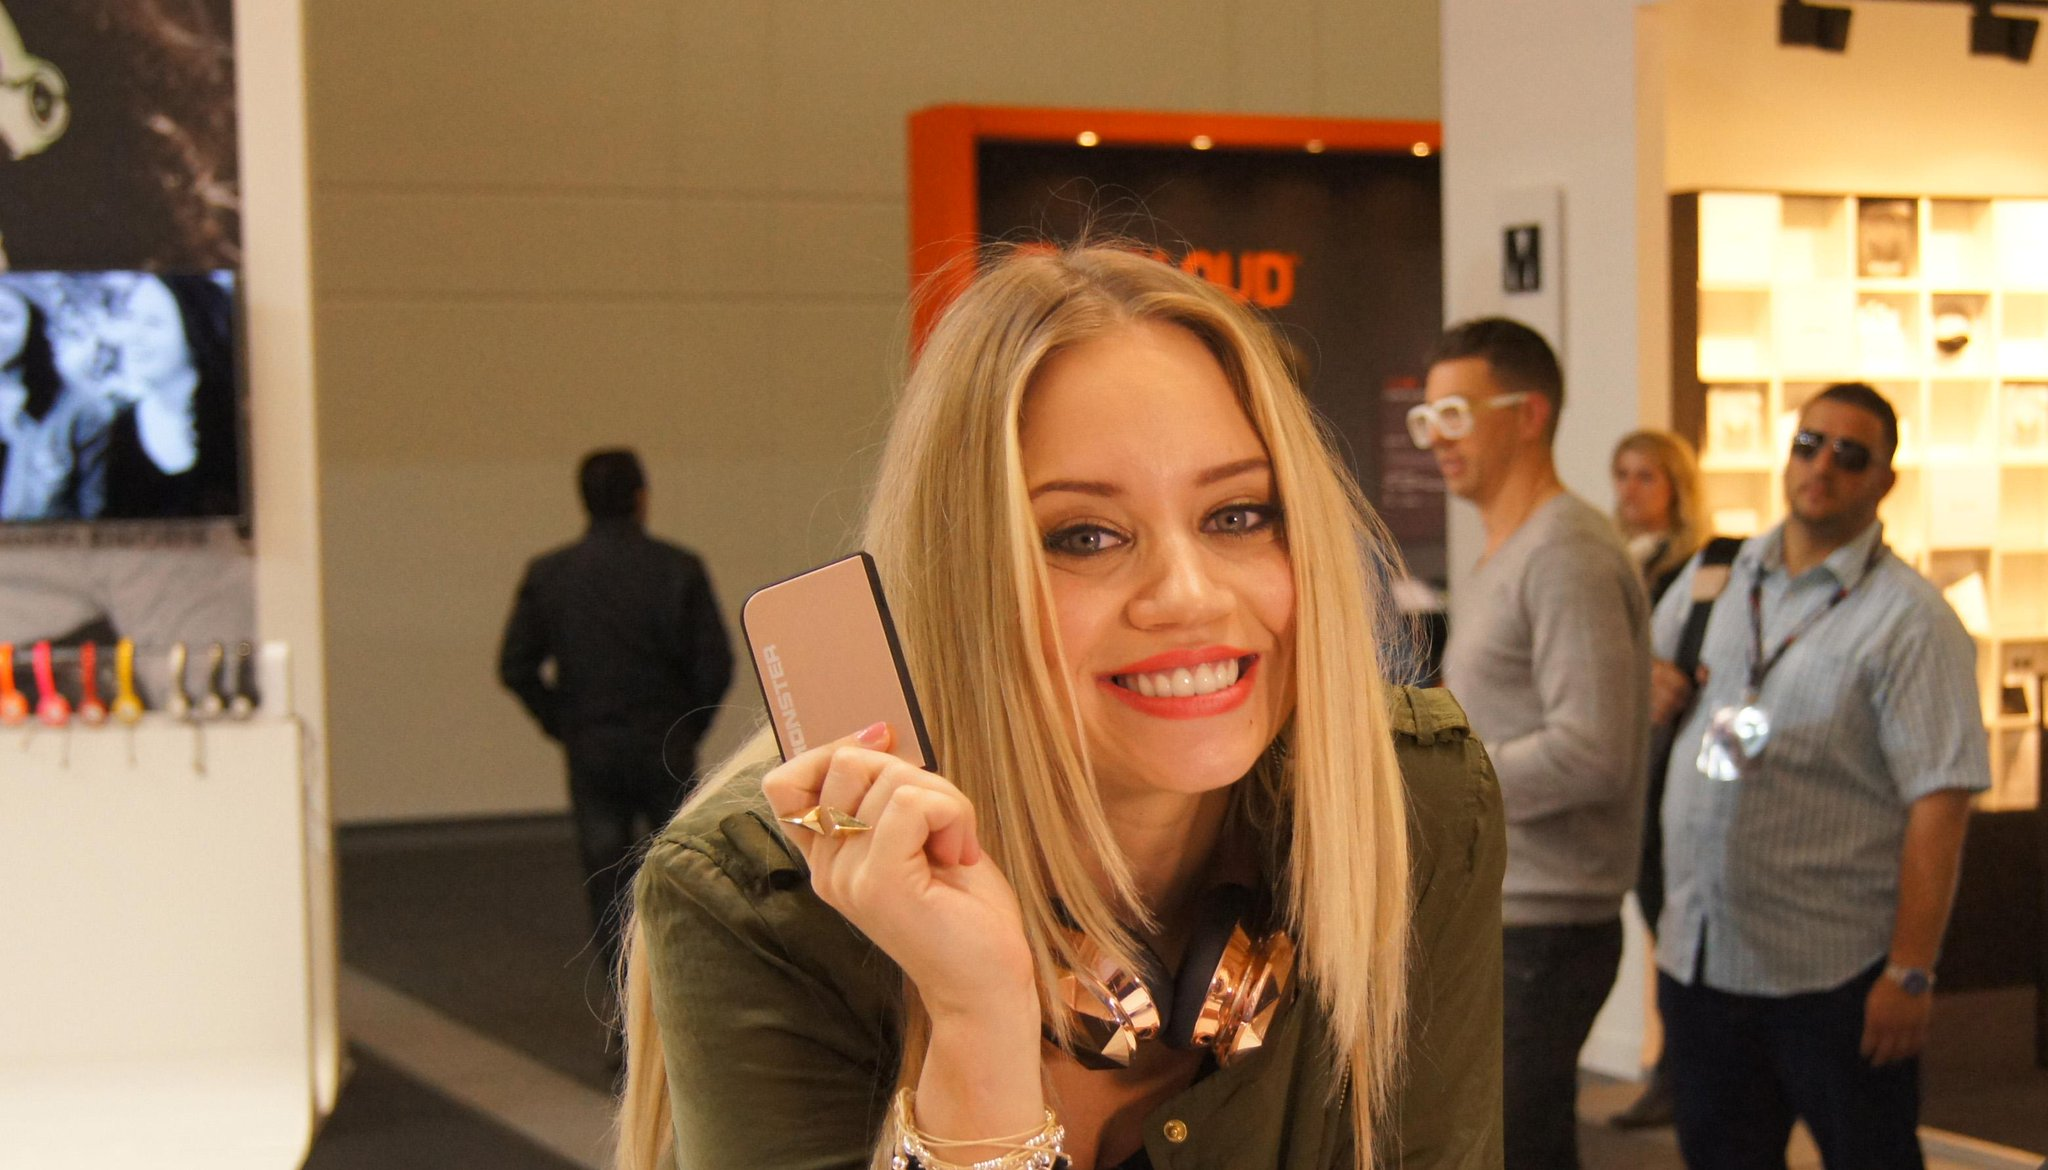 RT @Monster_EU: The lovely @KimberlyKWyatt dropped by the #MonsterIFA booth to grab some power and say hello #IFA #IFA2014 #IFABerlin http:…